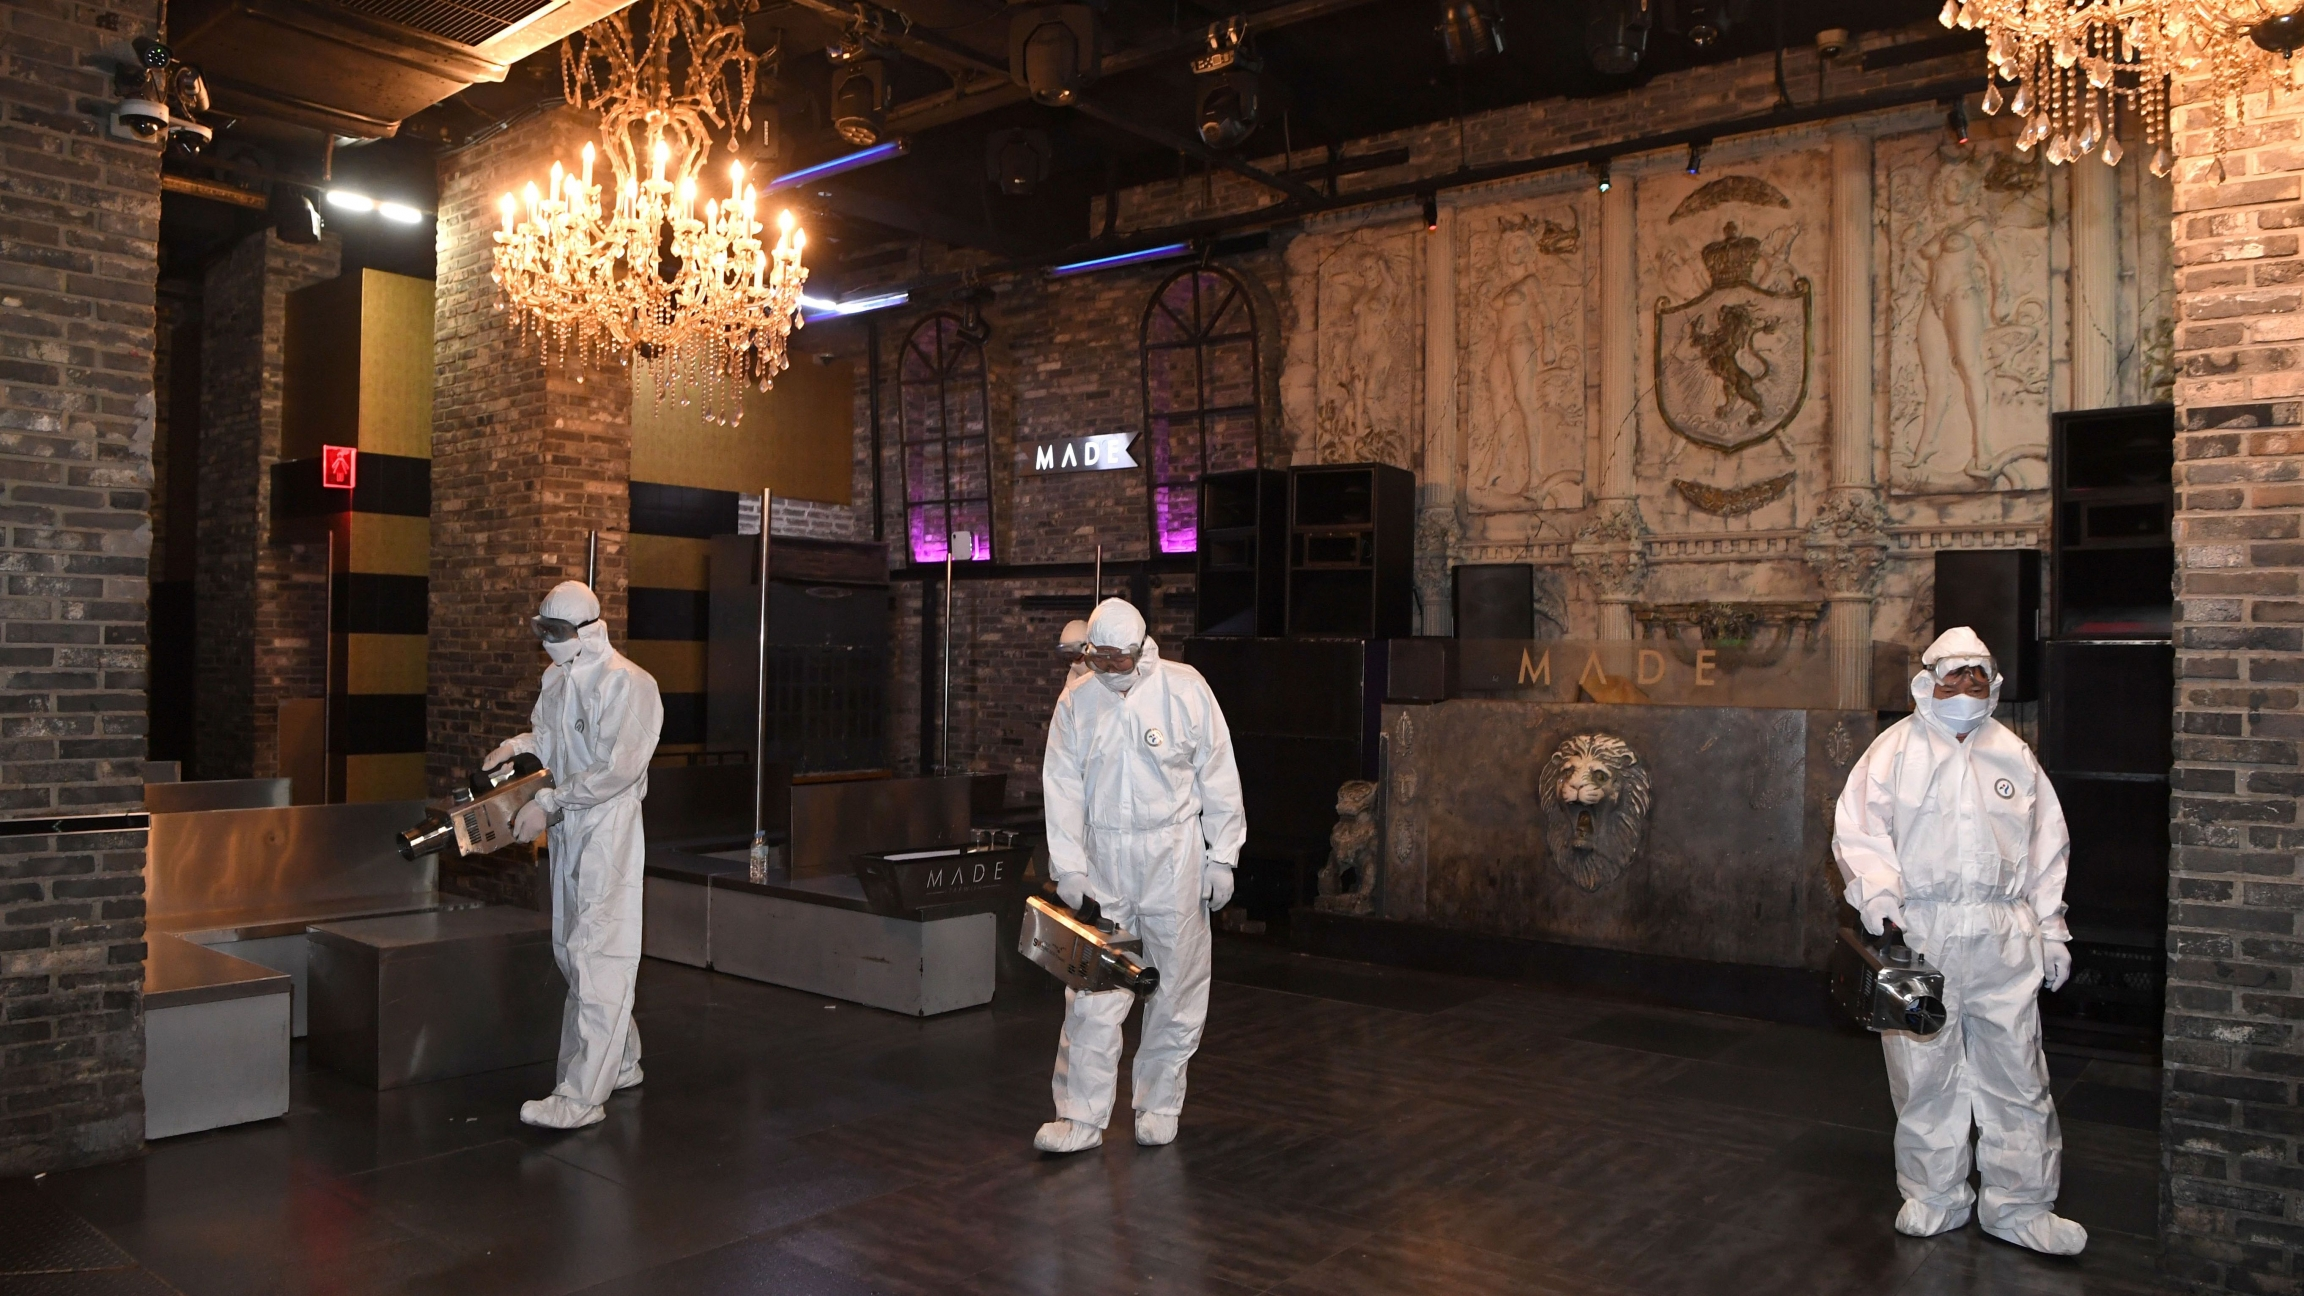 Quarantine worker spray disinfectants at a night club on the night spots in the Itaewon neighborhood, following the coronavirus disease (COVID-19) outbreak, in Seoul, South Korea, May 12, 2020.